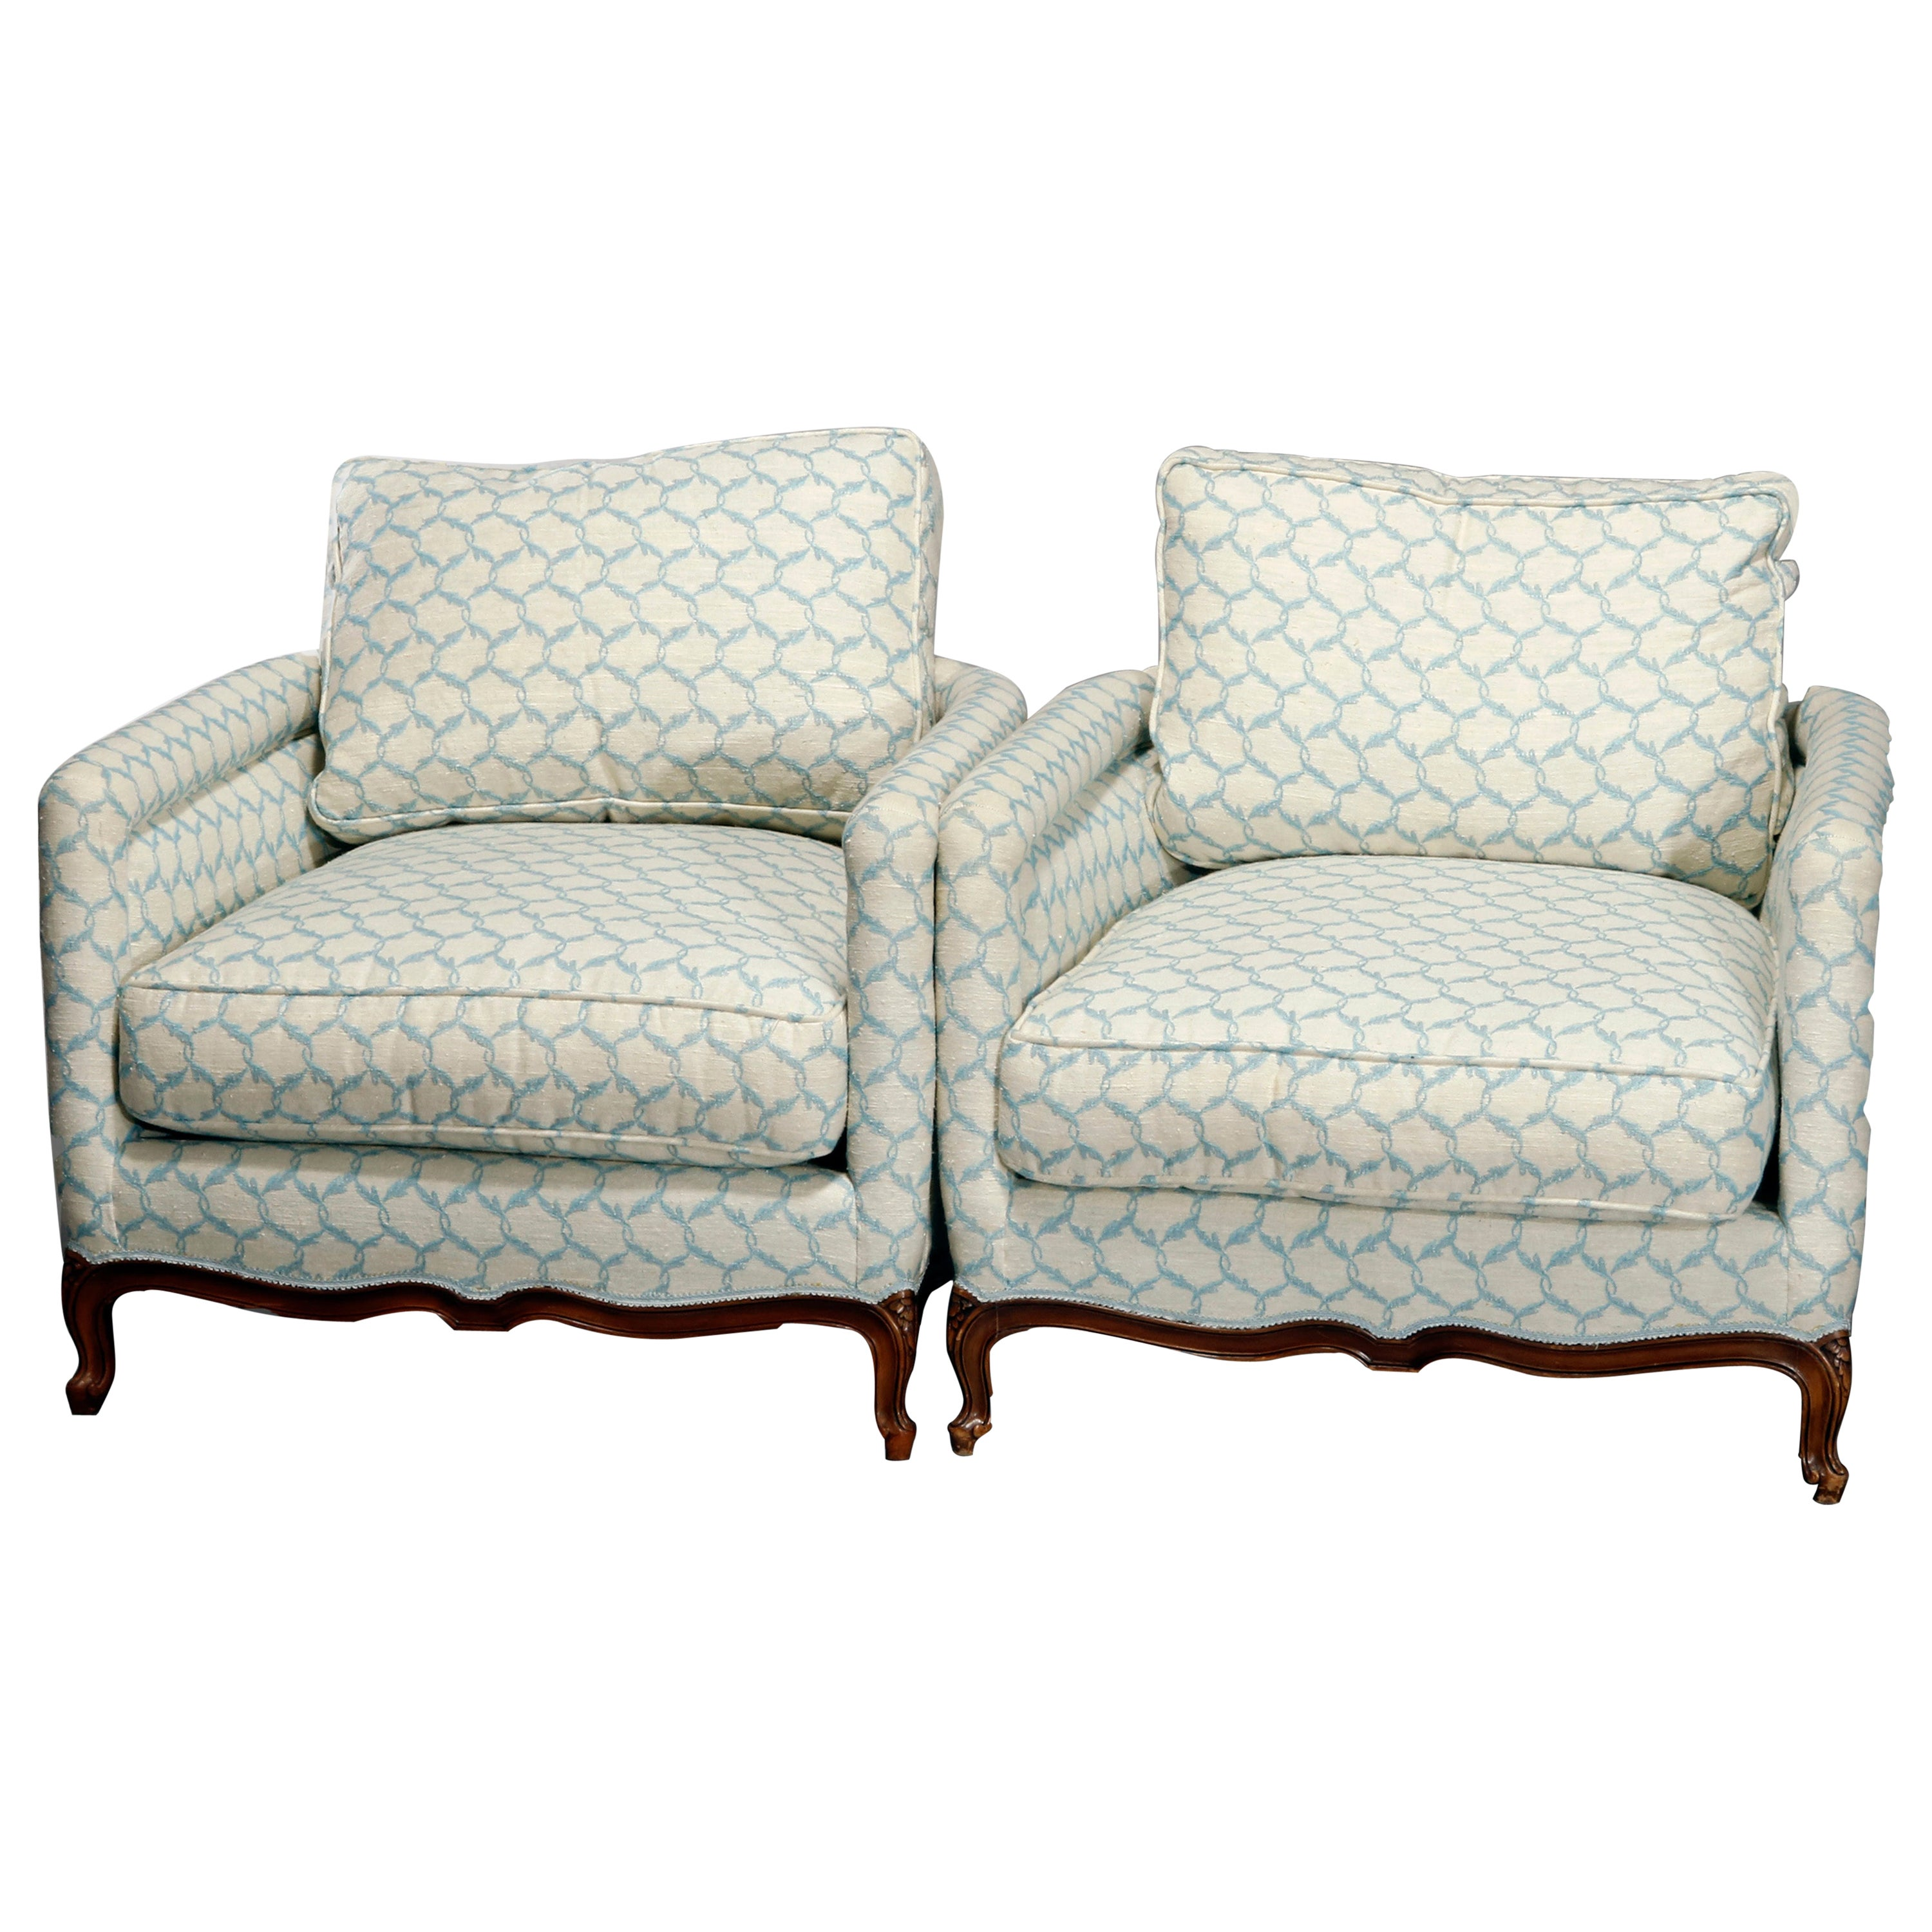 Antique Pair French Louis XV Style Upholstered Armchairs, 20th Century